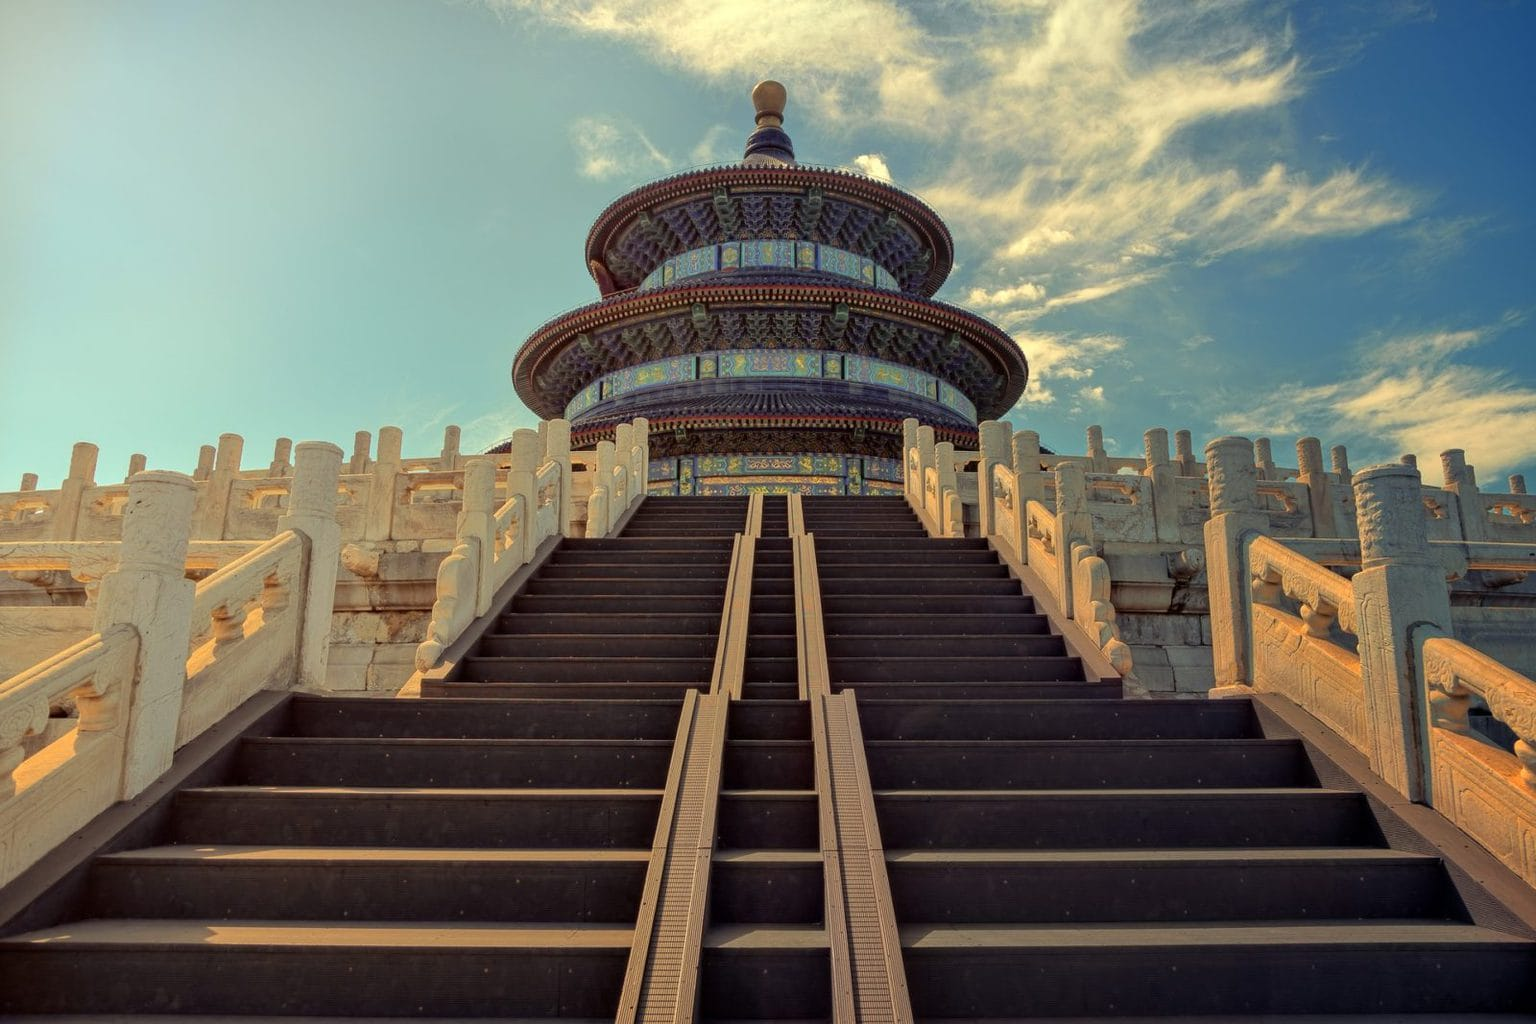 Picture of the Temple of Heaven in Beijing, China